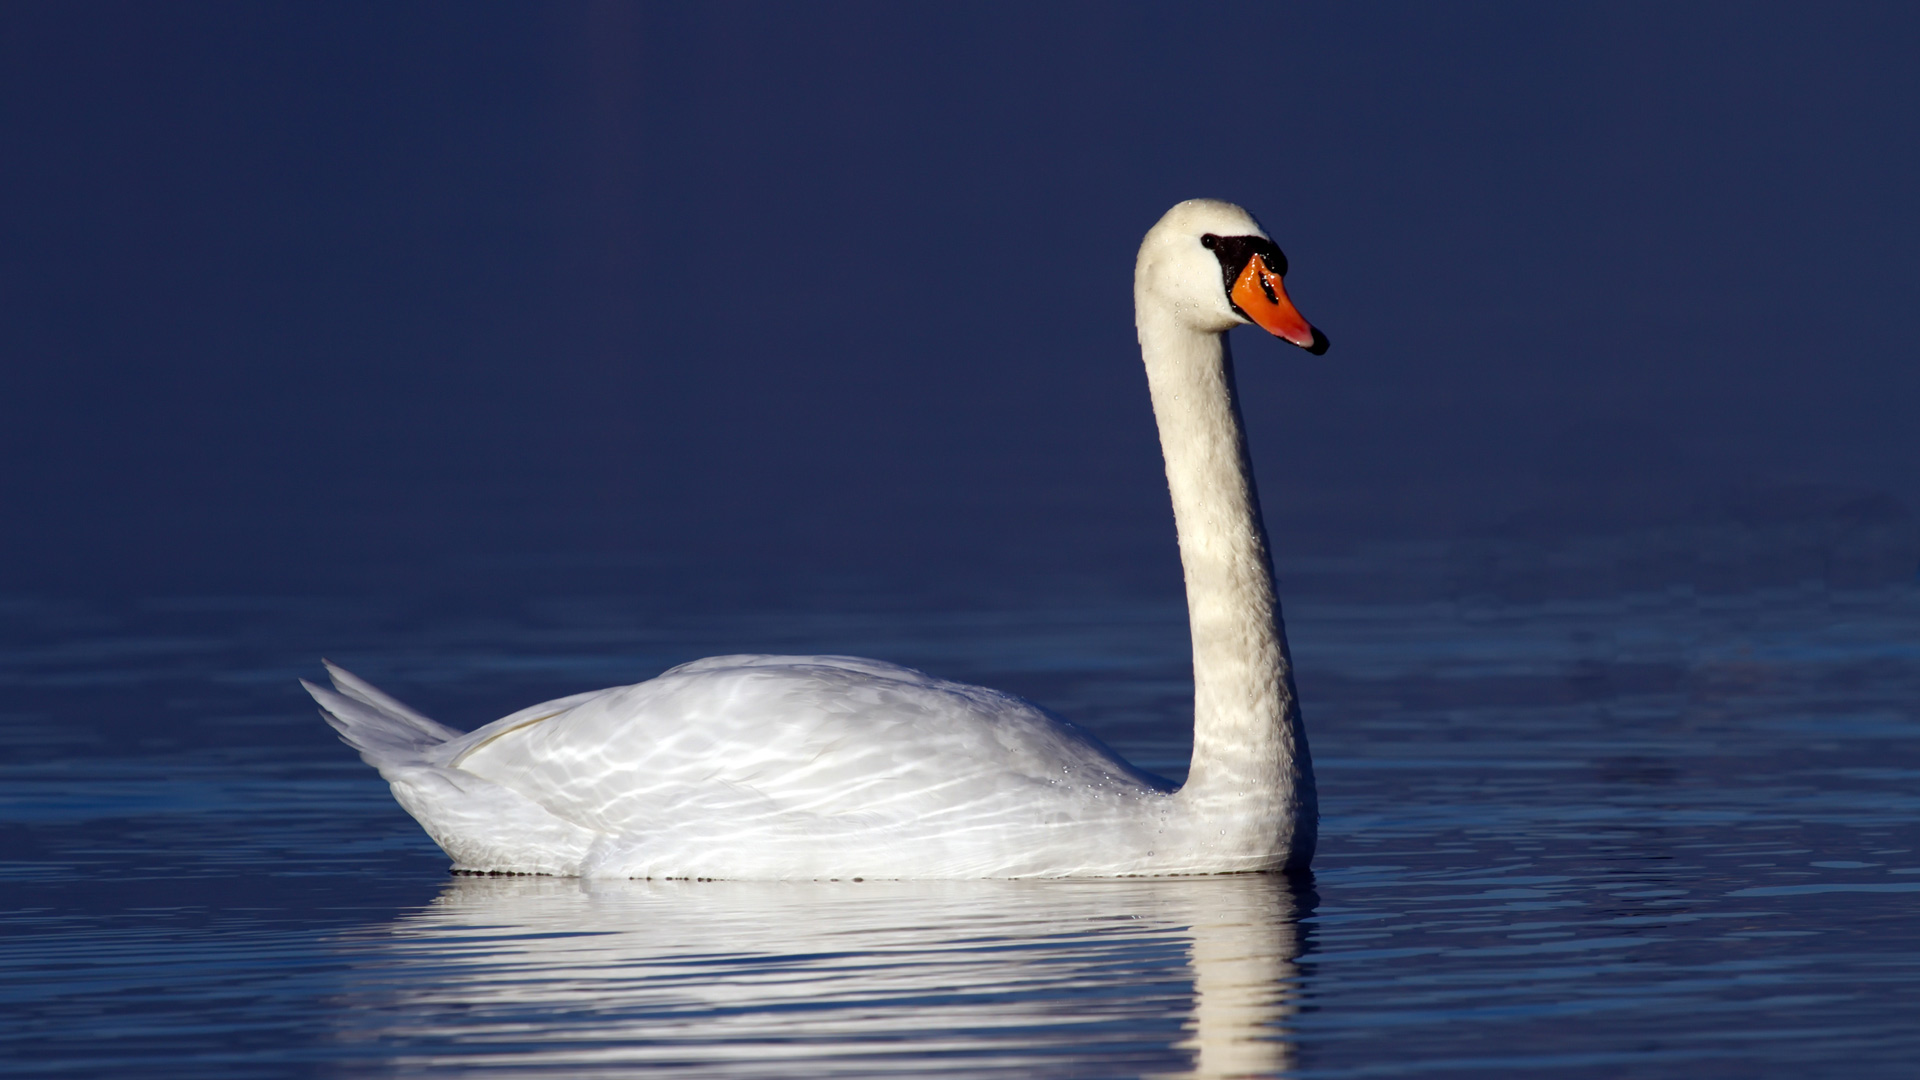 One mute swan floating quietly on blue water